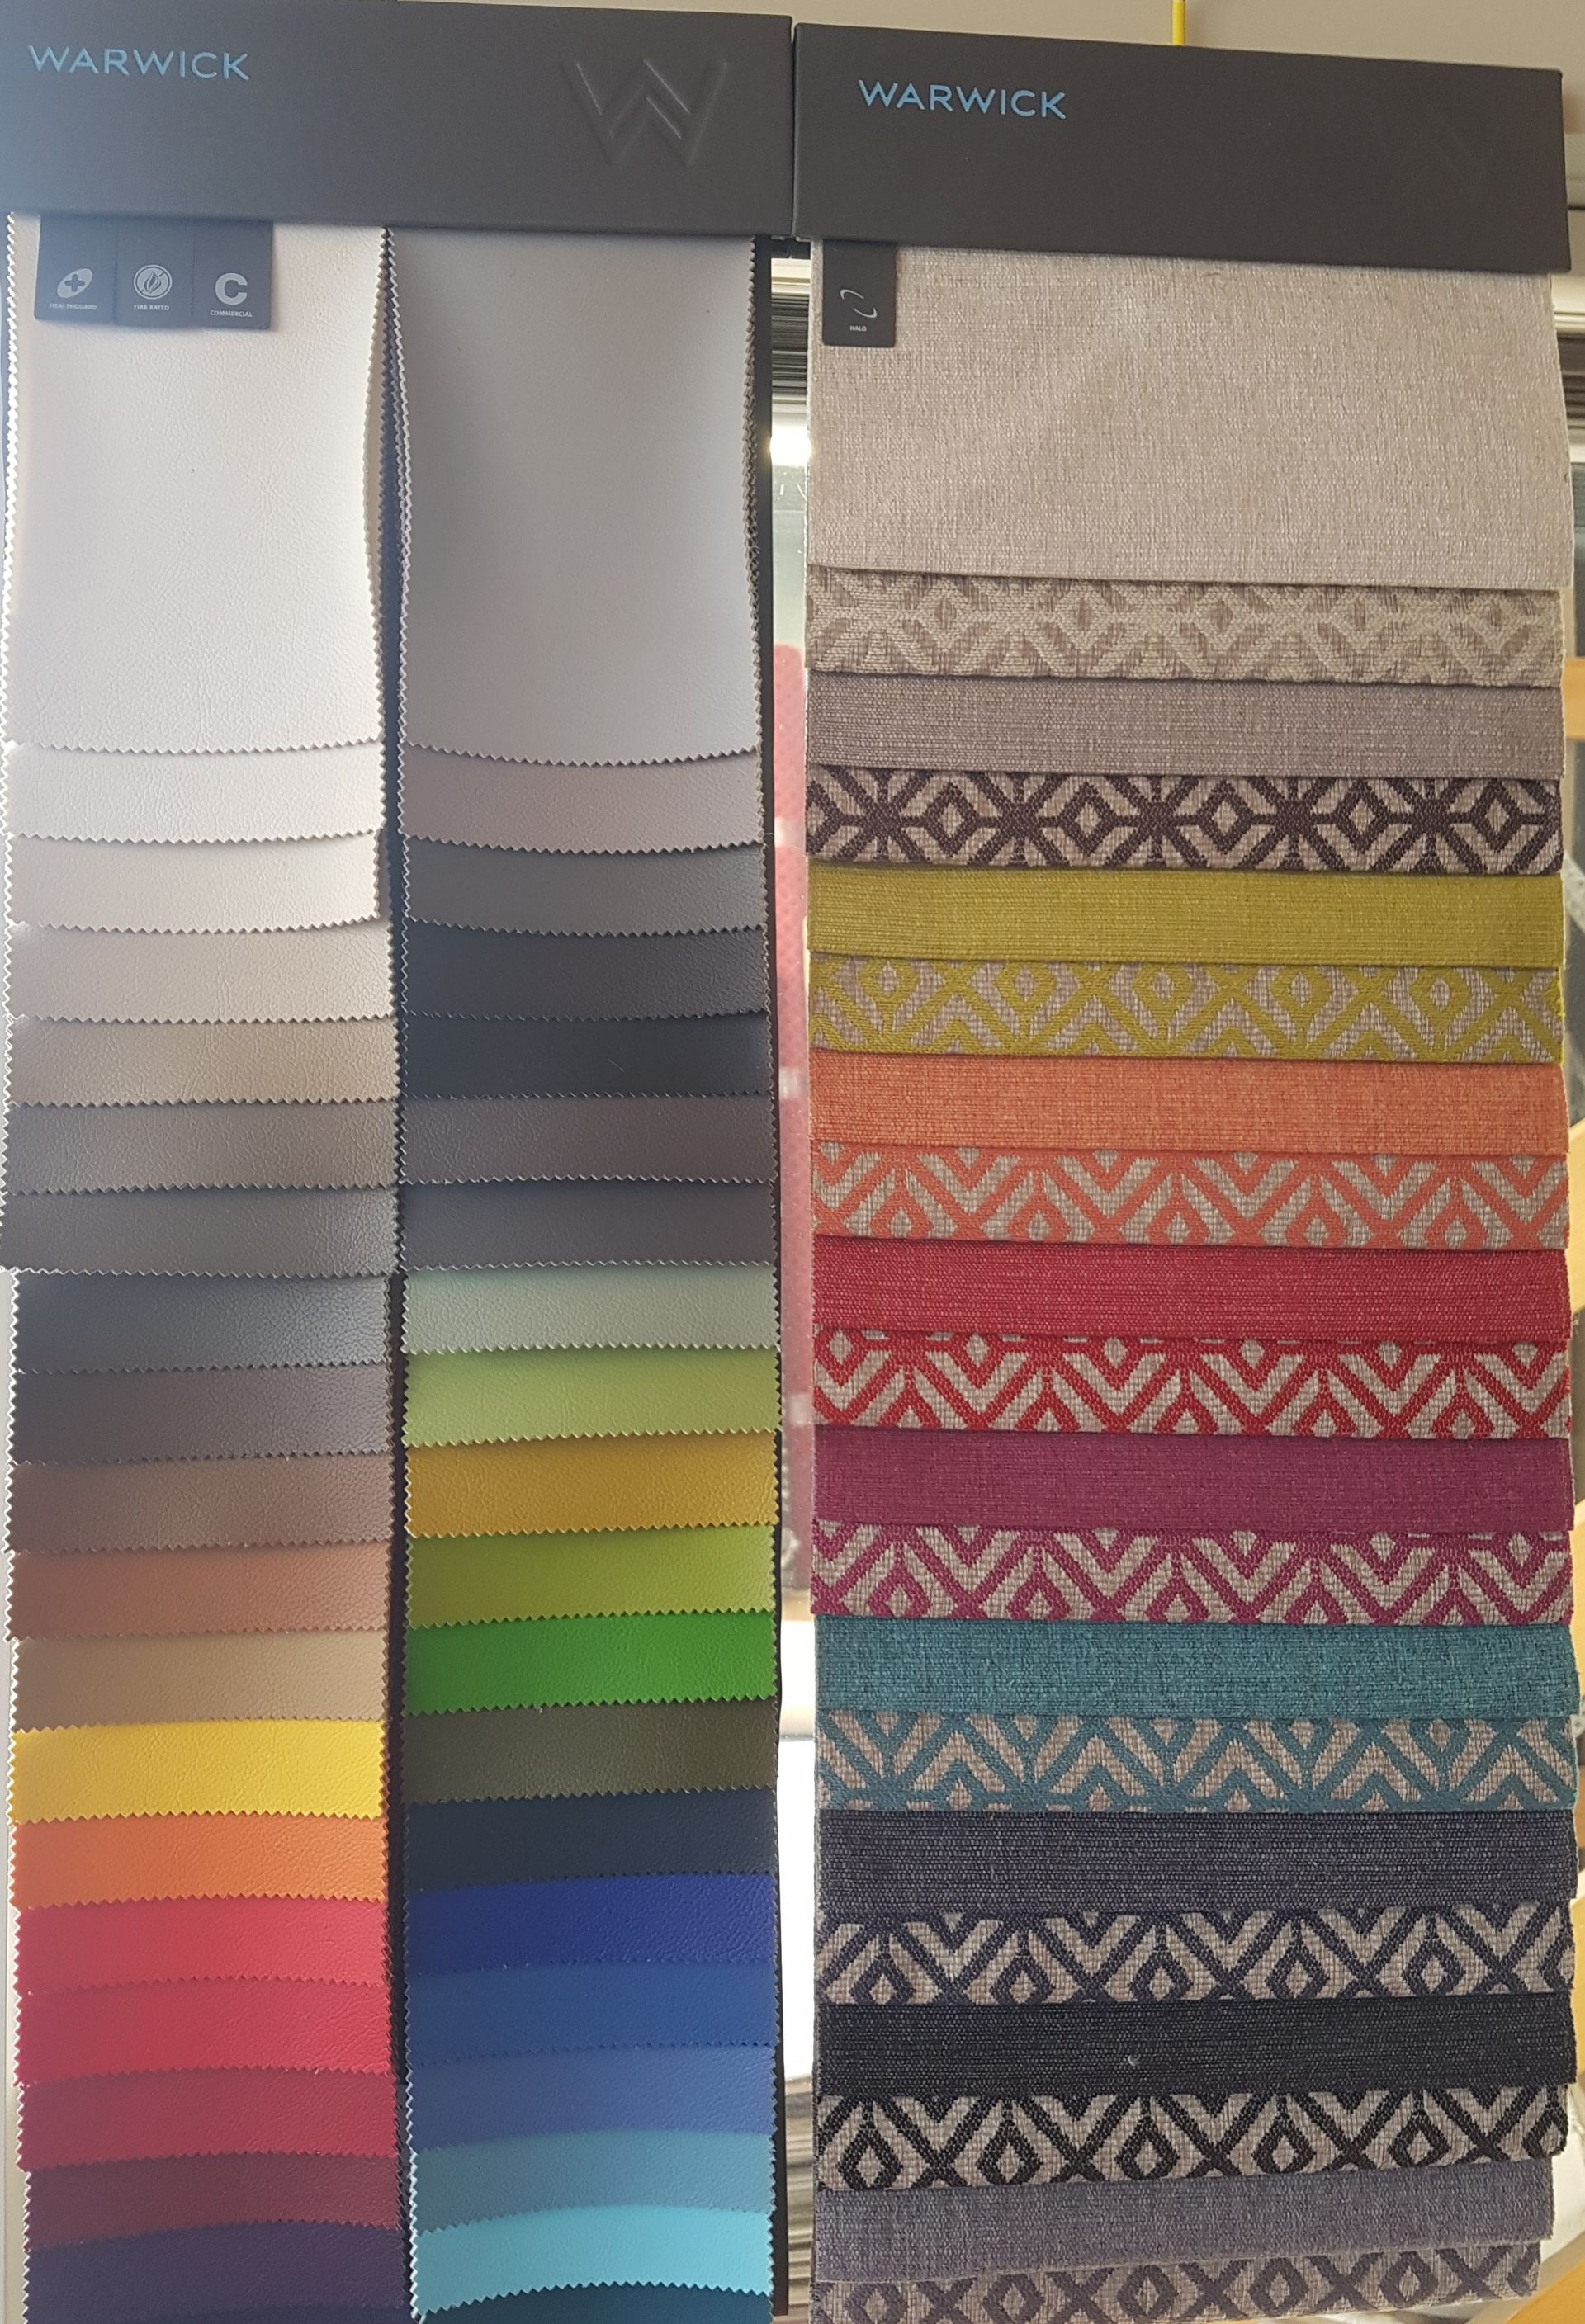 Carpet/Rug Finishings - Manufacturing. Profit over $350k, Owners retiring after 30 years - Rare Opportunity